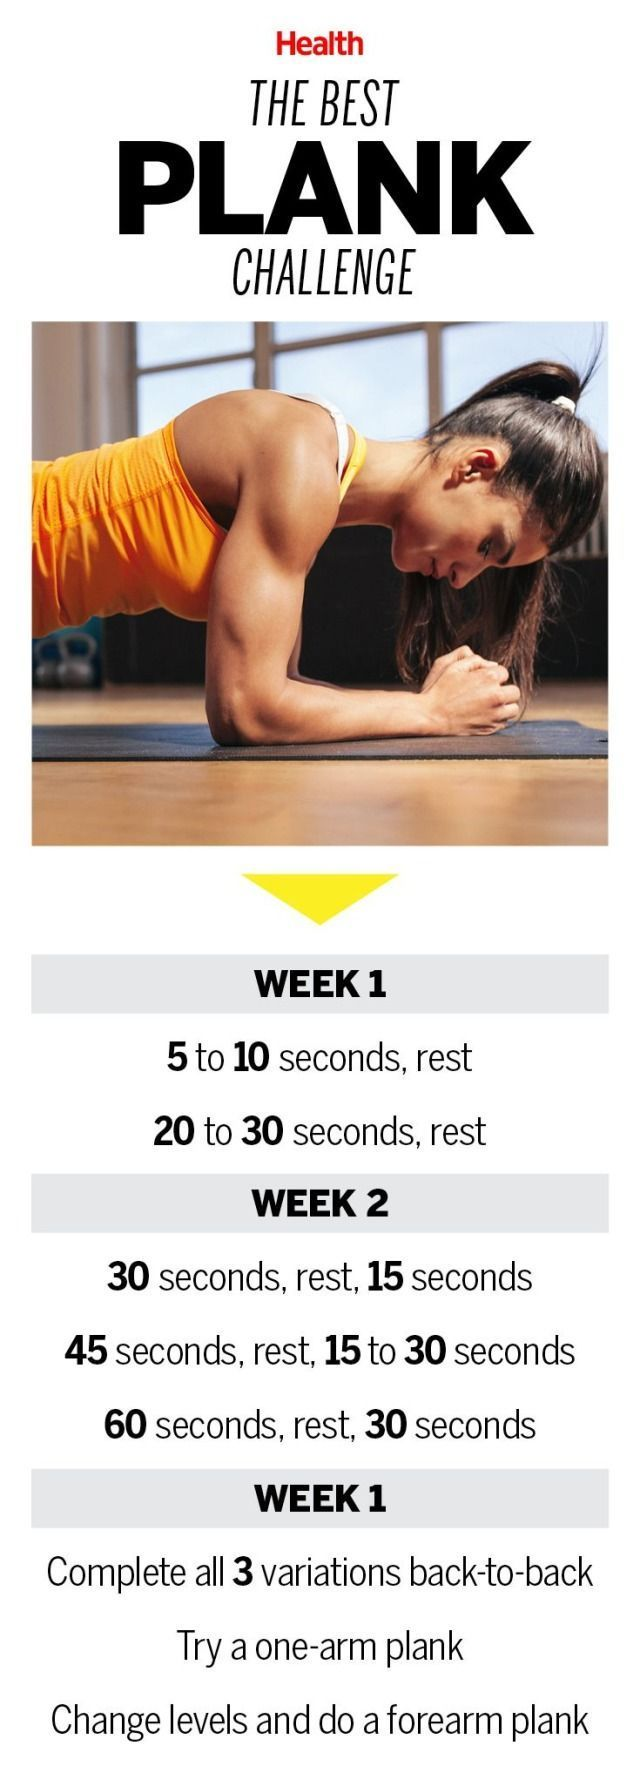 Tighten Your Core in 21 Days With This Plank Challenge | Health.com